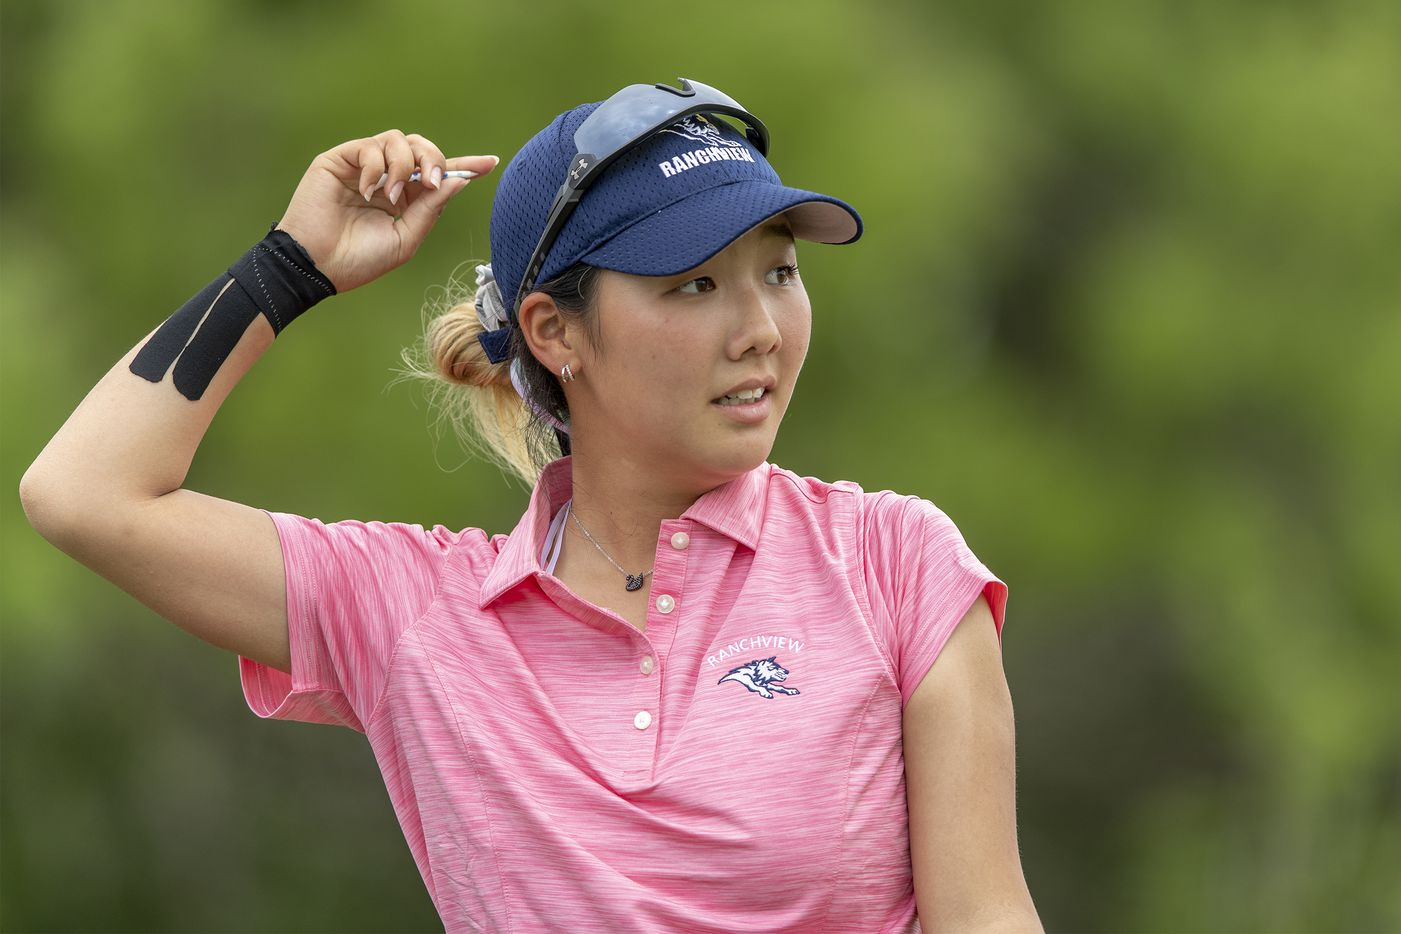 Carrollton Ranchview's Bohyun Park watches her shot from the 11th tee box during the final day of the UIL Class 4A girls golf tournament in Kyle, Tuesday, May 11, 2021. (Stephen Spillman/Special Contributor)